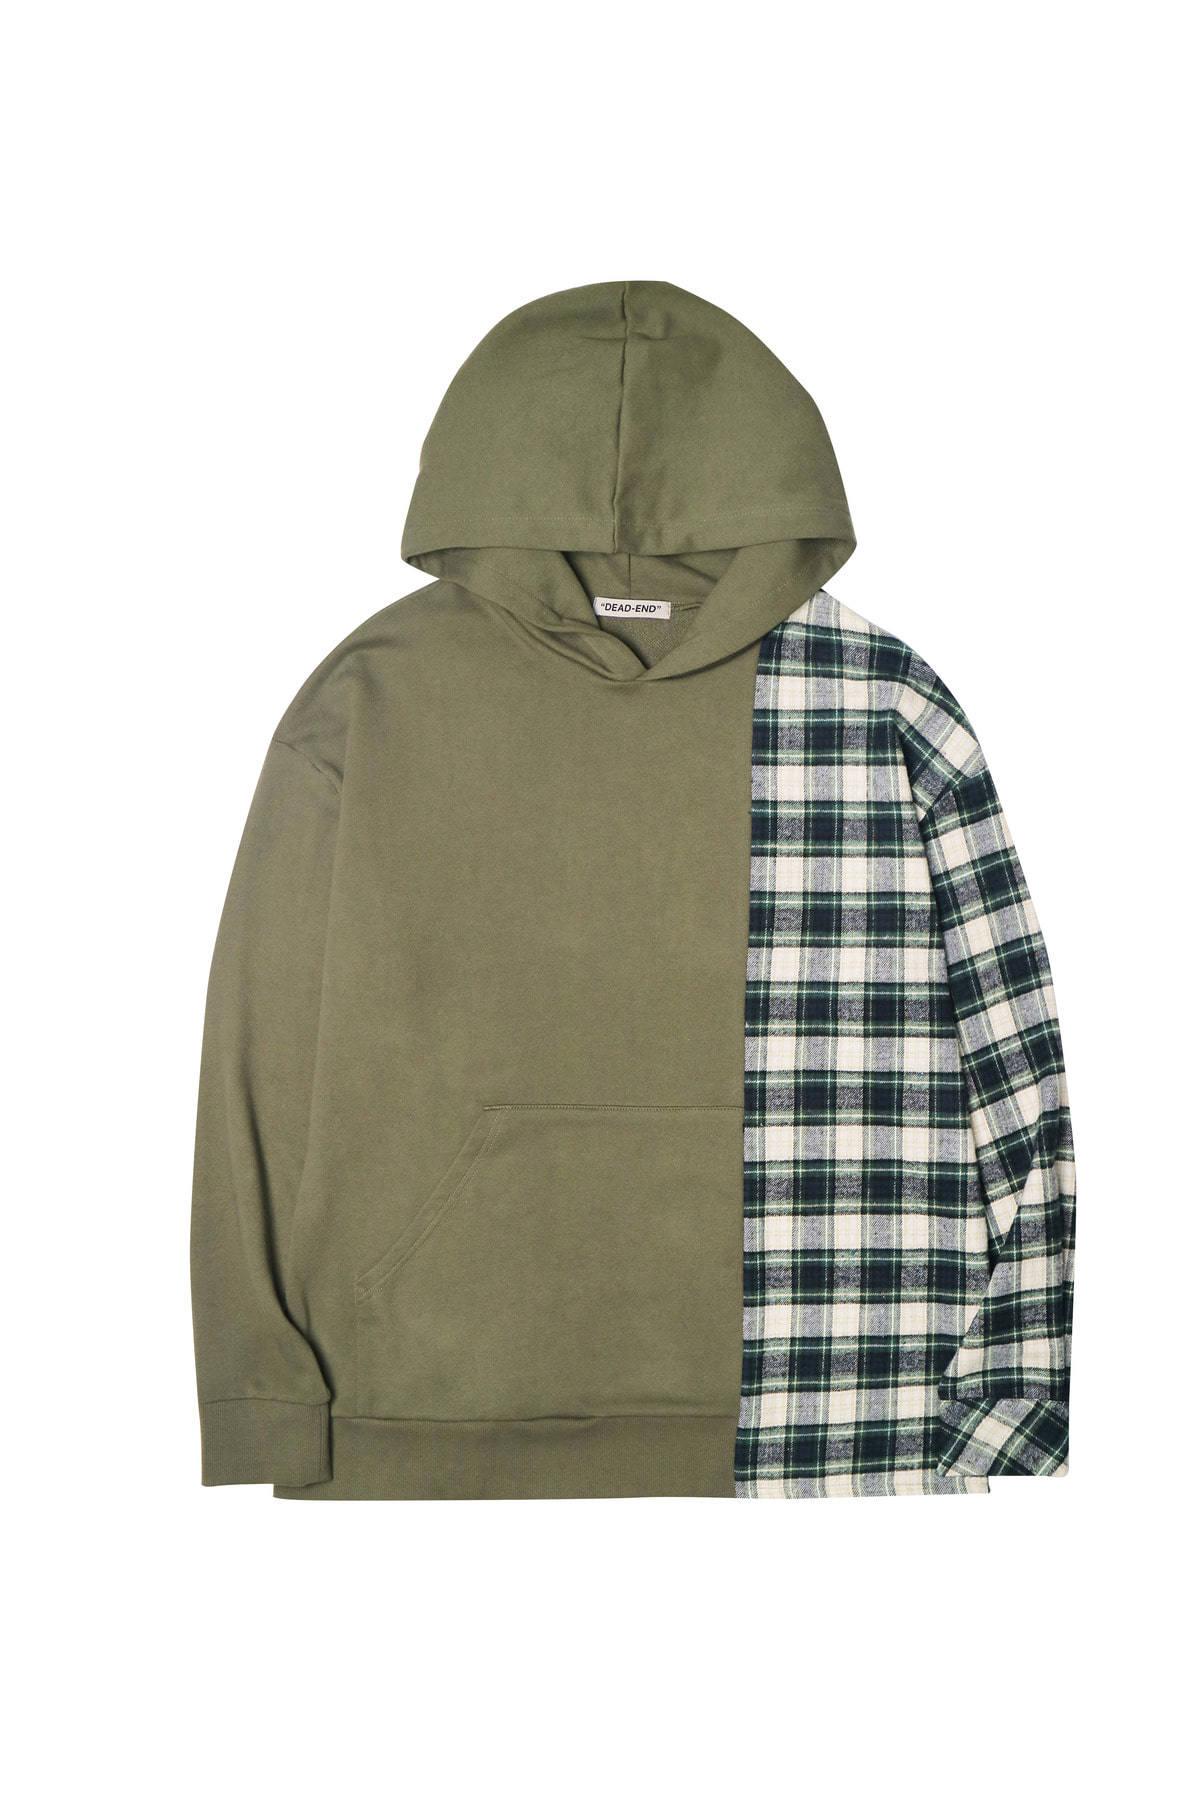 KHAKI DIVIDED PULLOVER HOODIE